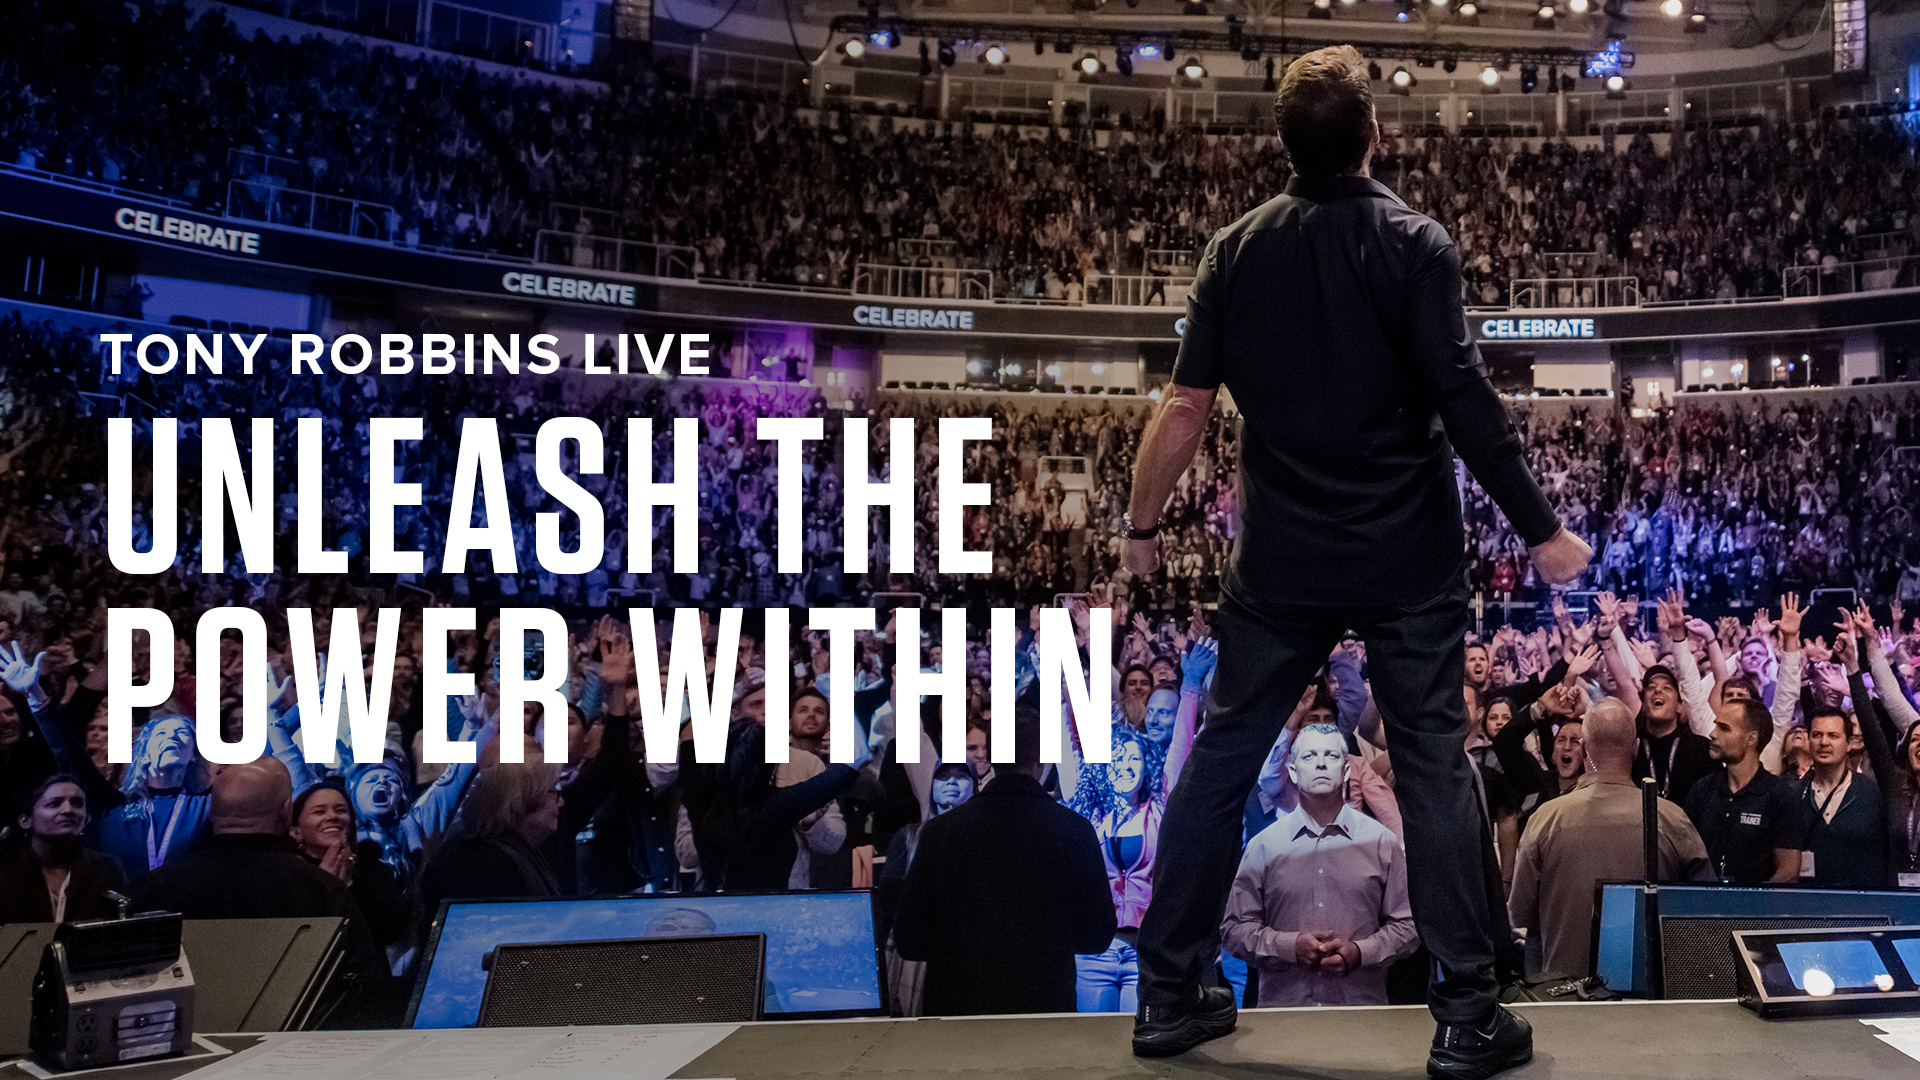 VIP Ticket for Unleash the Power Within in Newark 11/8/18 to 11/11/18